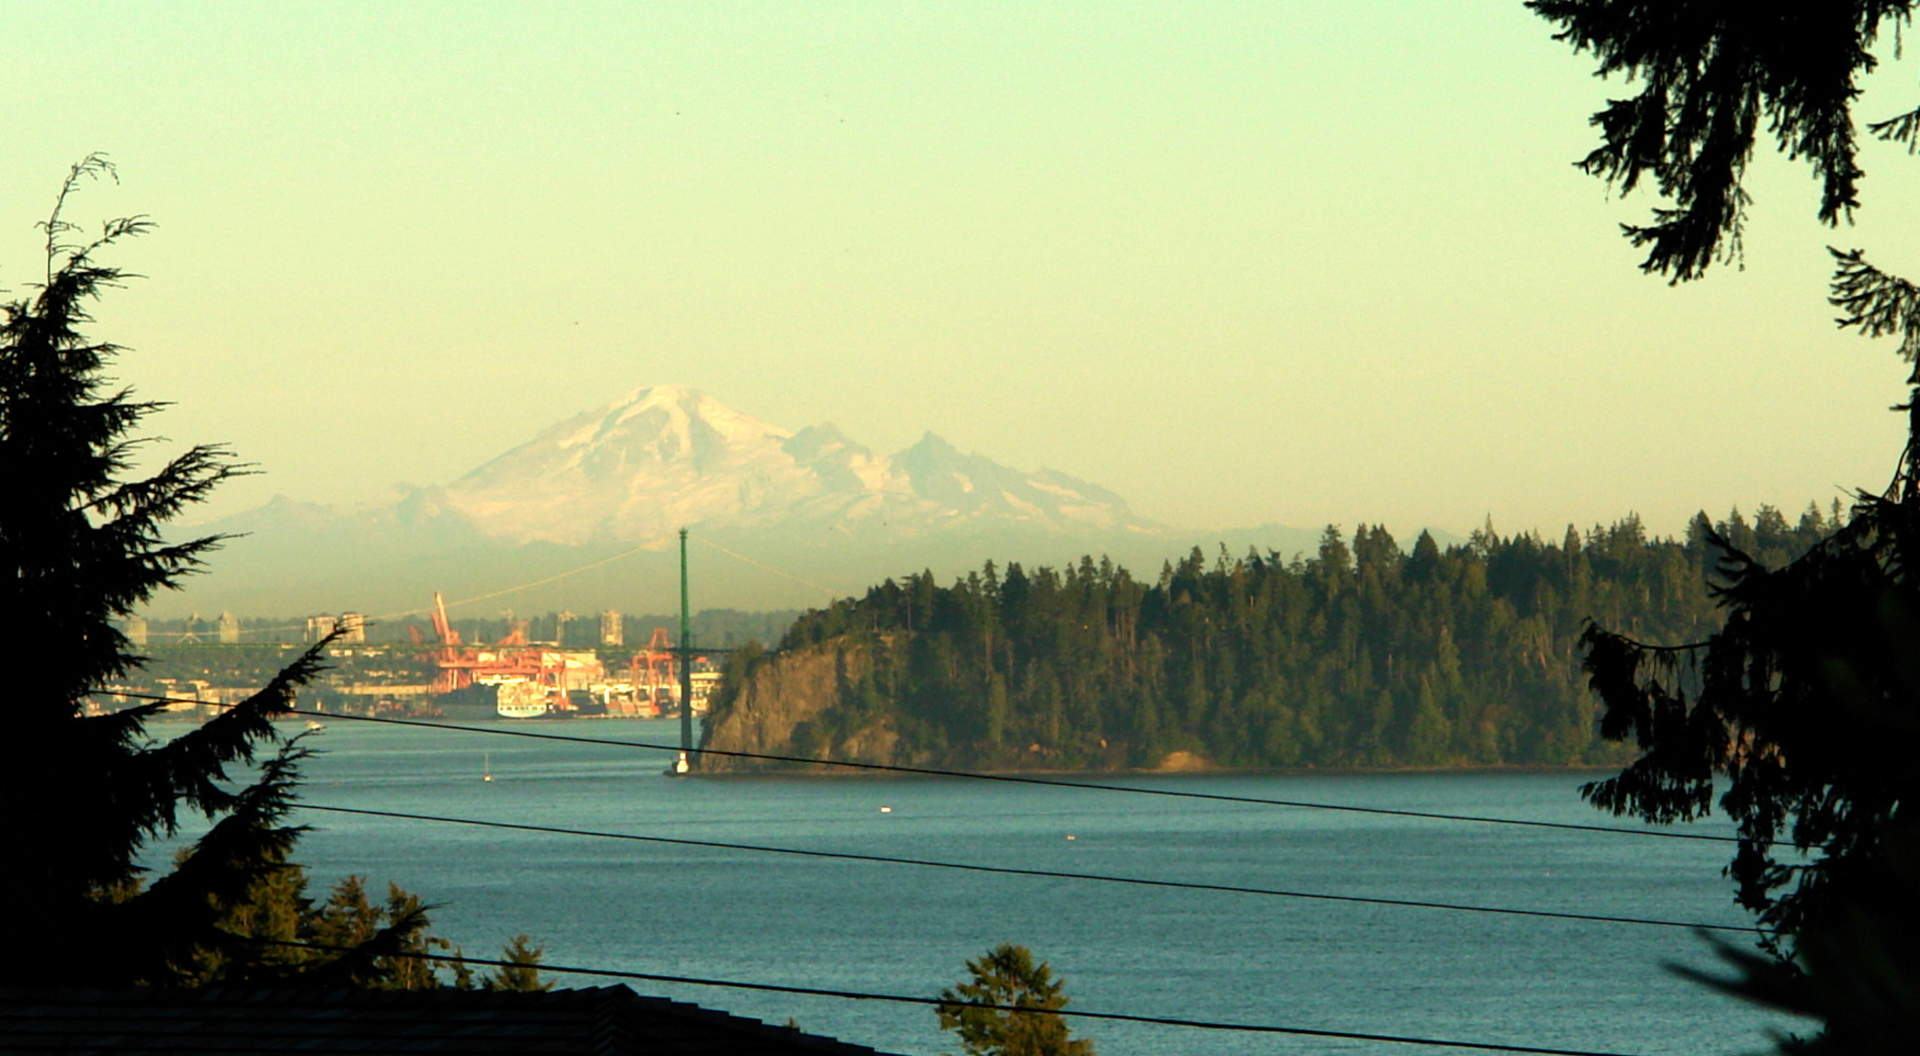 Views to Mount Baker, Stanley Park, and Vancouver's Inner Harbour